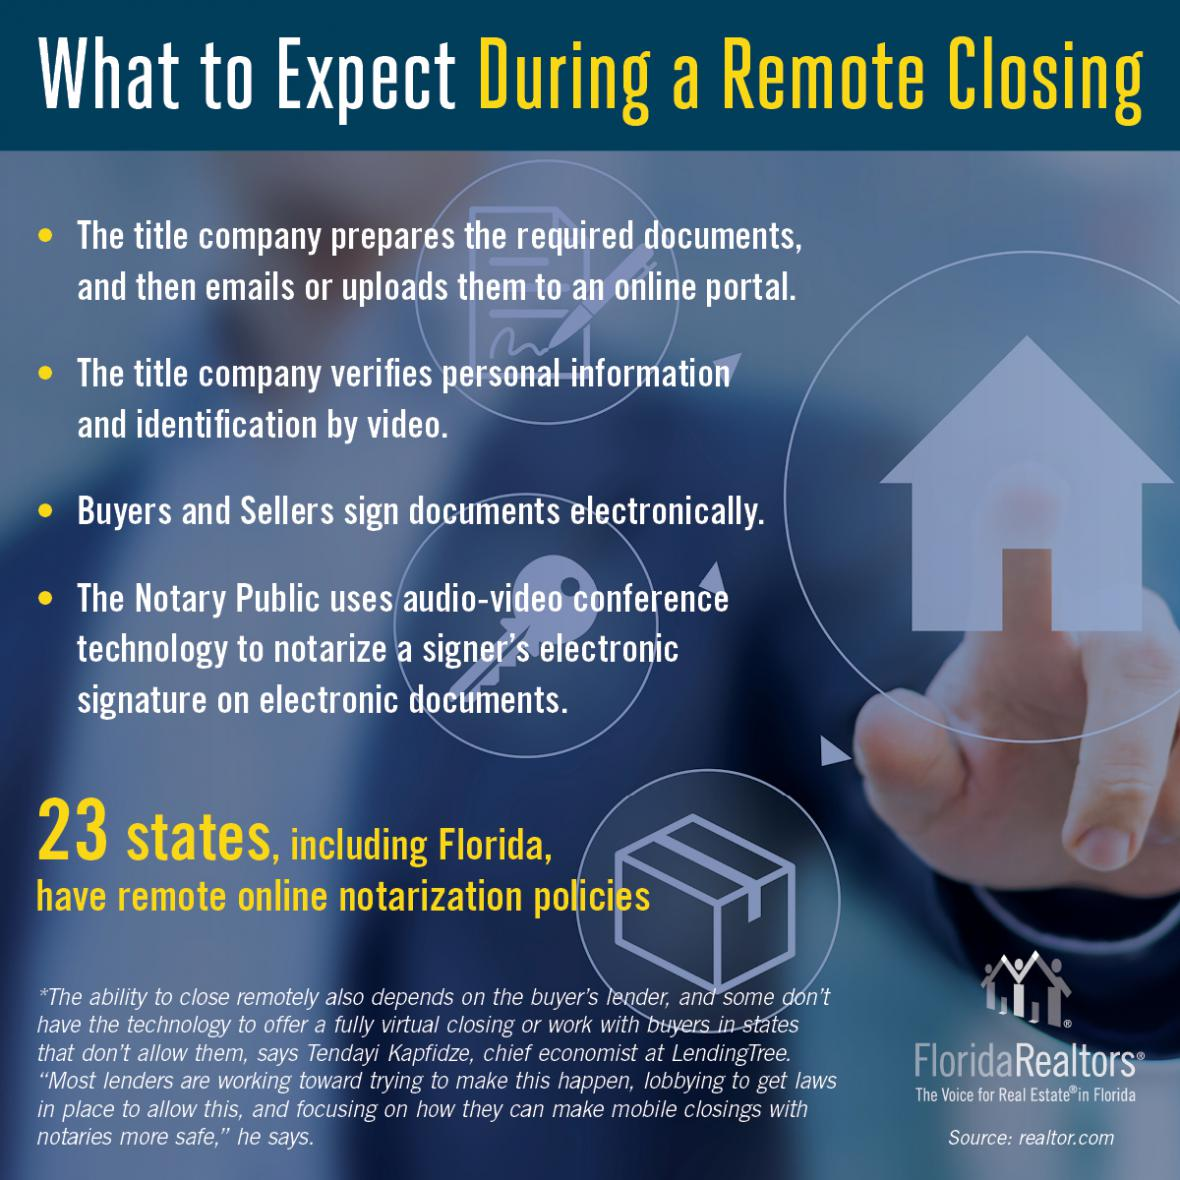 What to Expect During a Remote Closing infographic